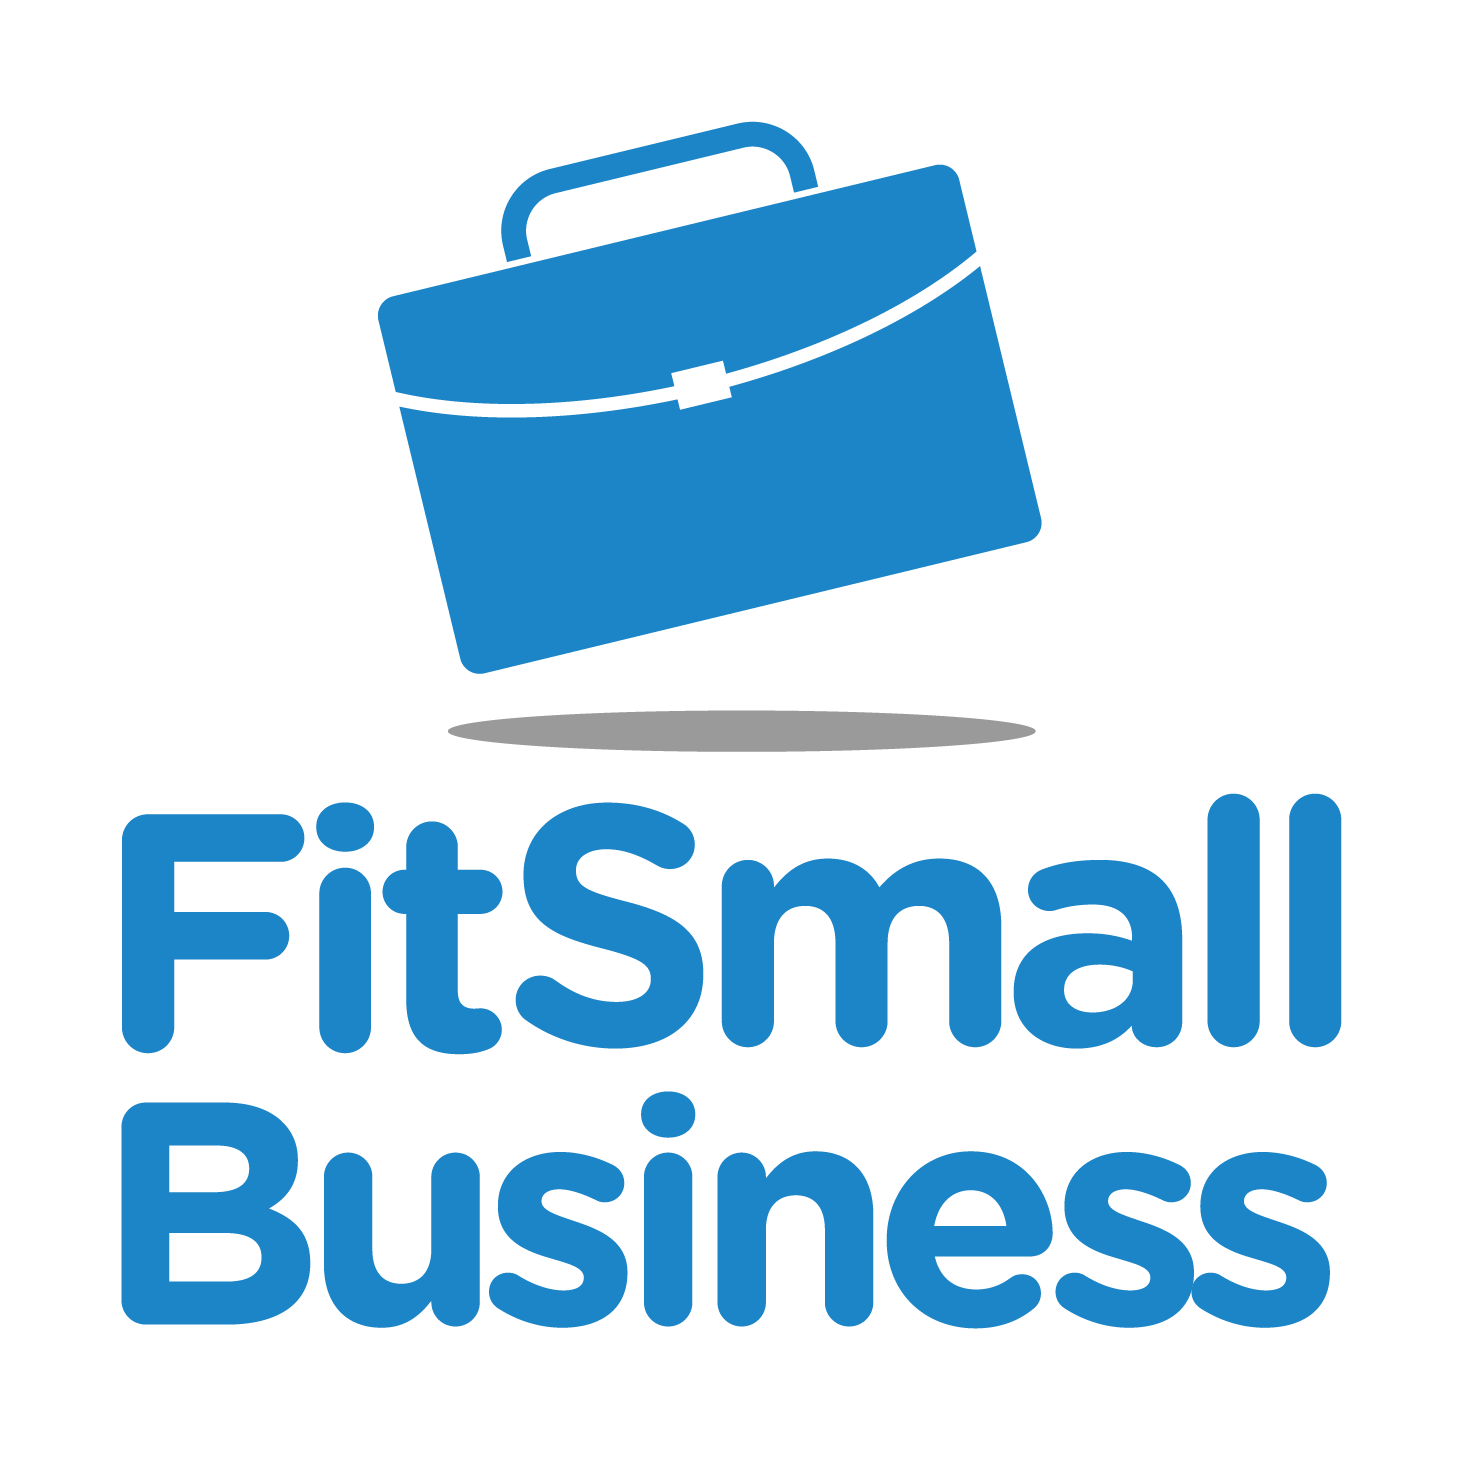 Fit Small Business - When To Sell a Business - Tips from the Pros